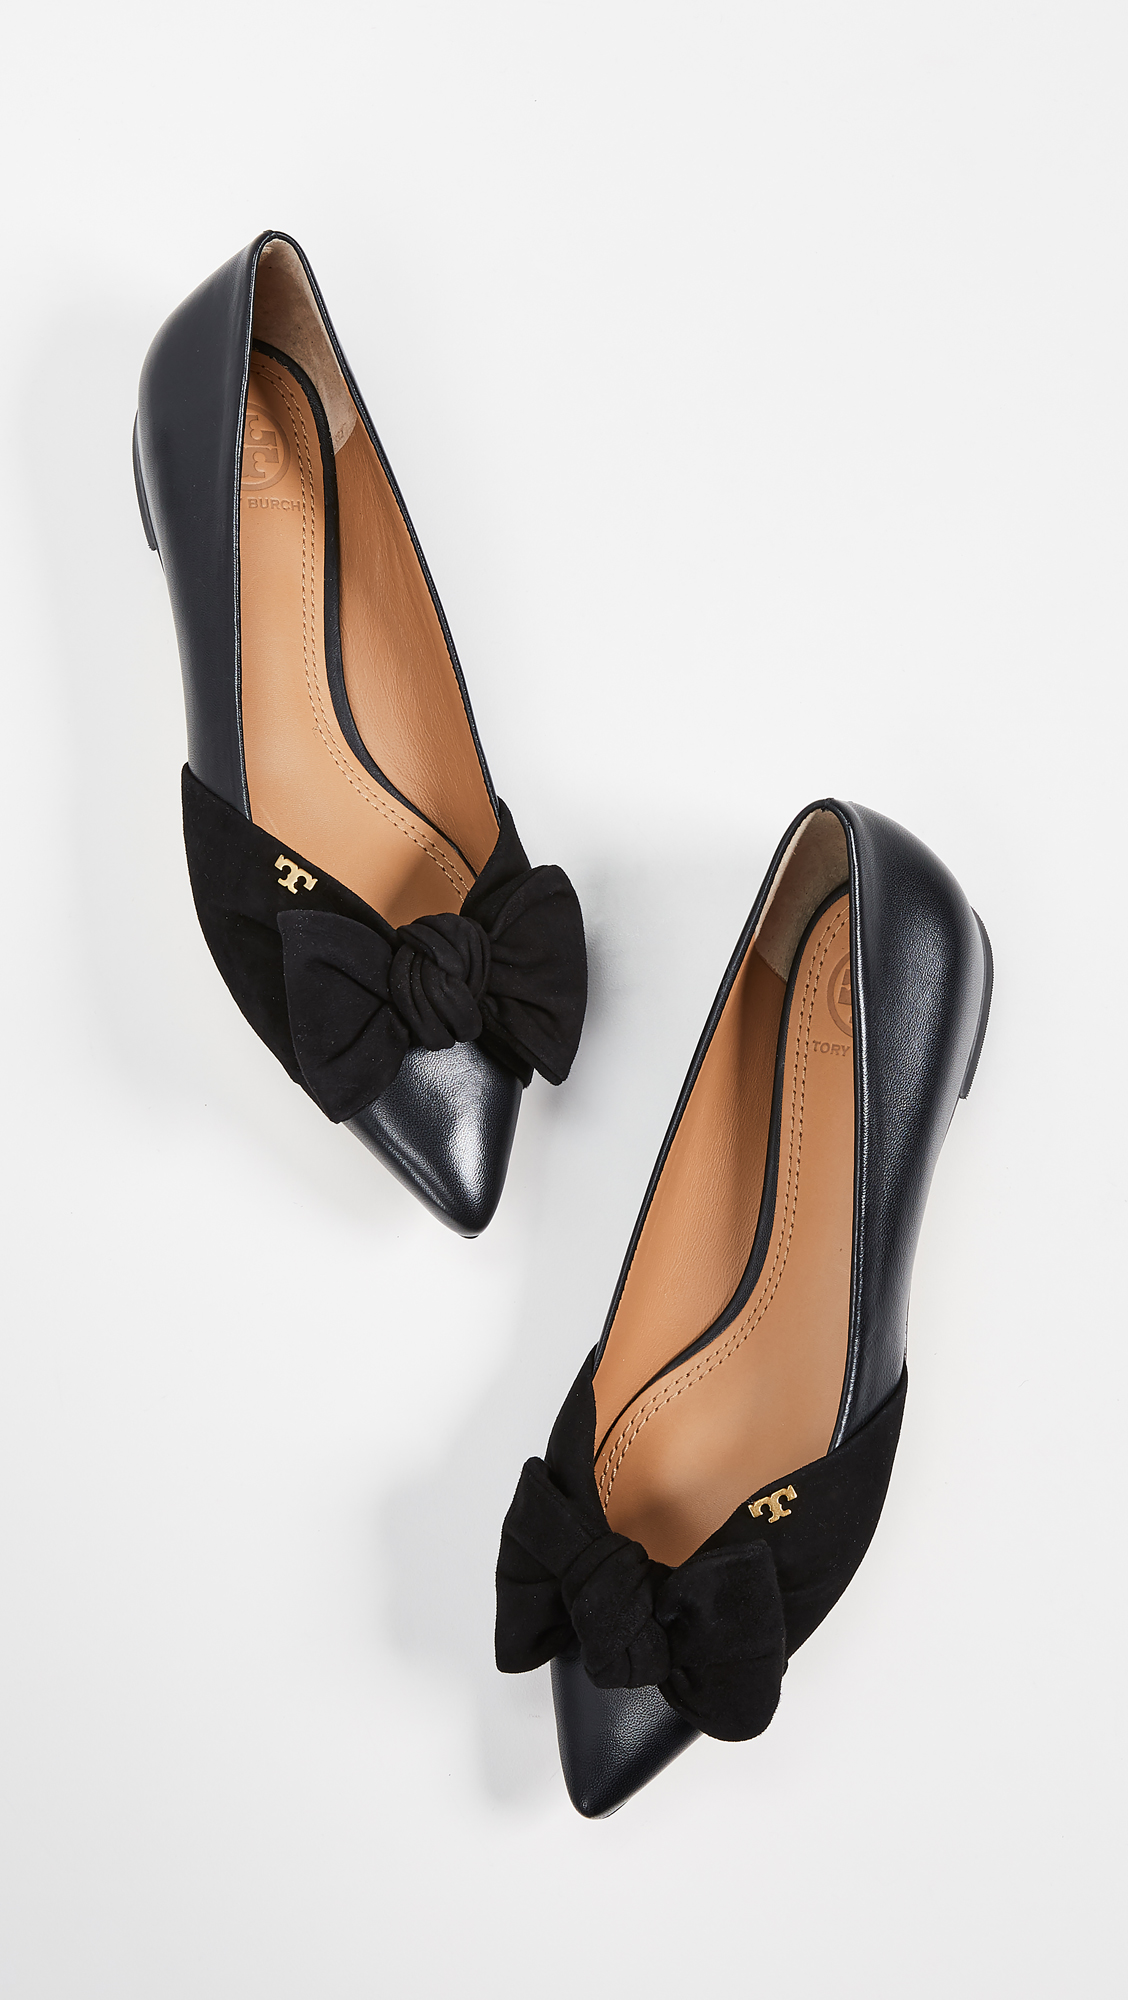 Tory Burch Pointed Toe Flats